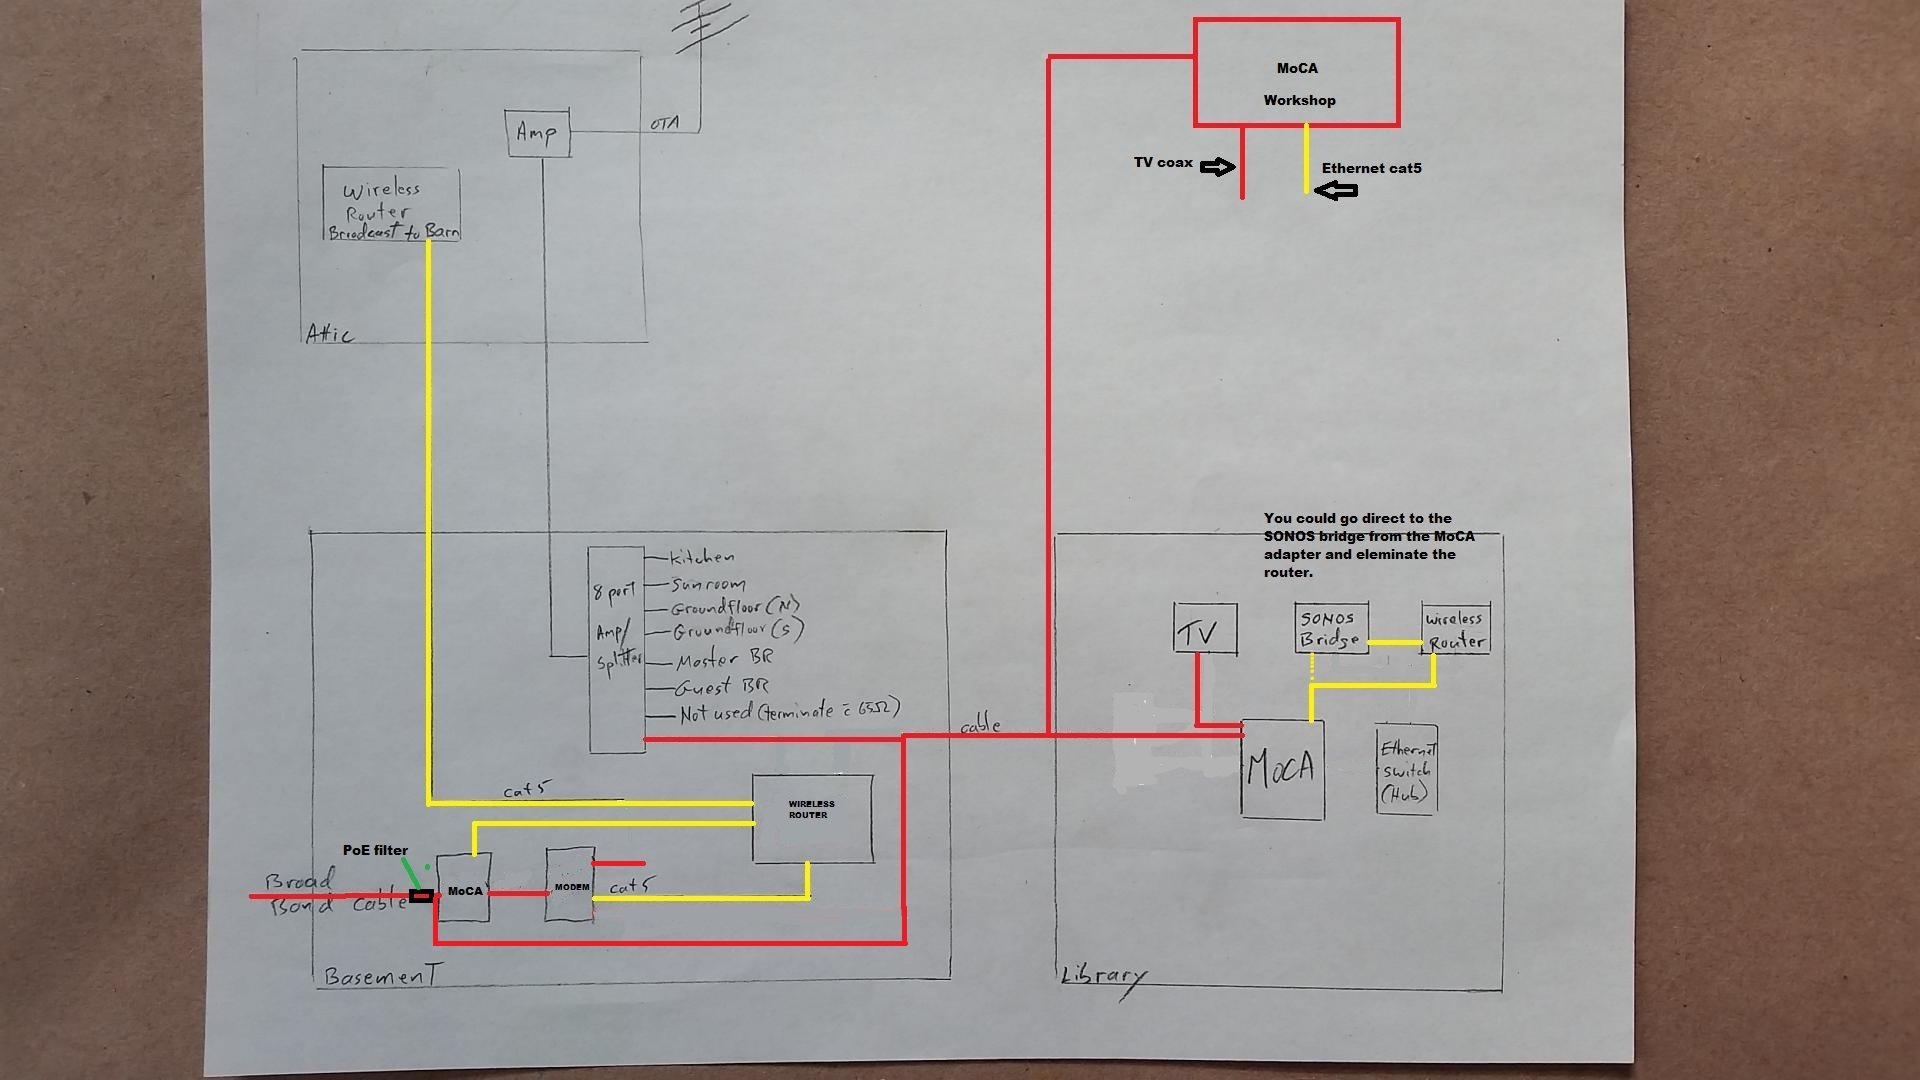 sonos bridge wiring diagram wiring diagram wireless bridge router image about wiring diagram